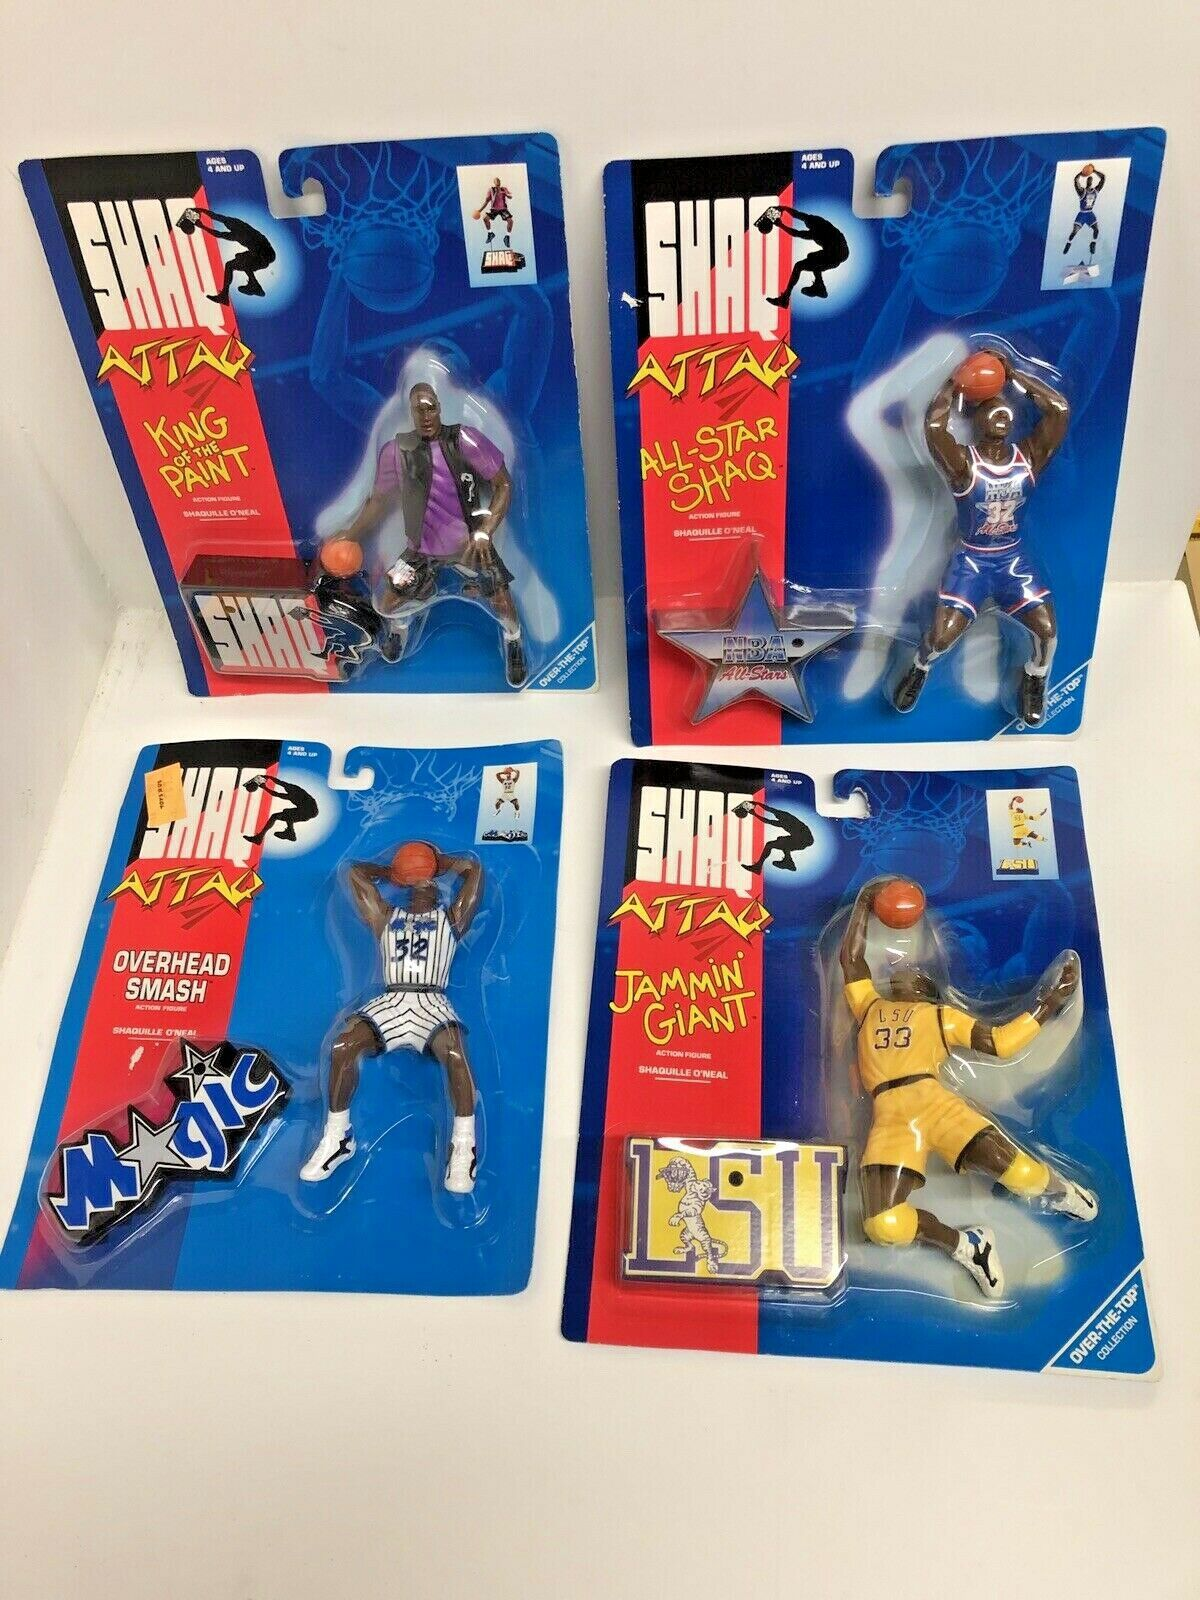 Shaquille O'Neal Orleo Magic LSU Set of 4 Shaq Attaq cifras In Packages T5